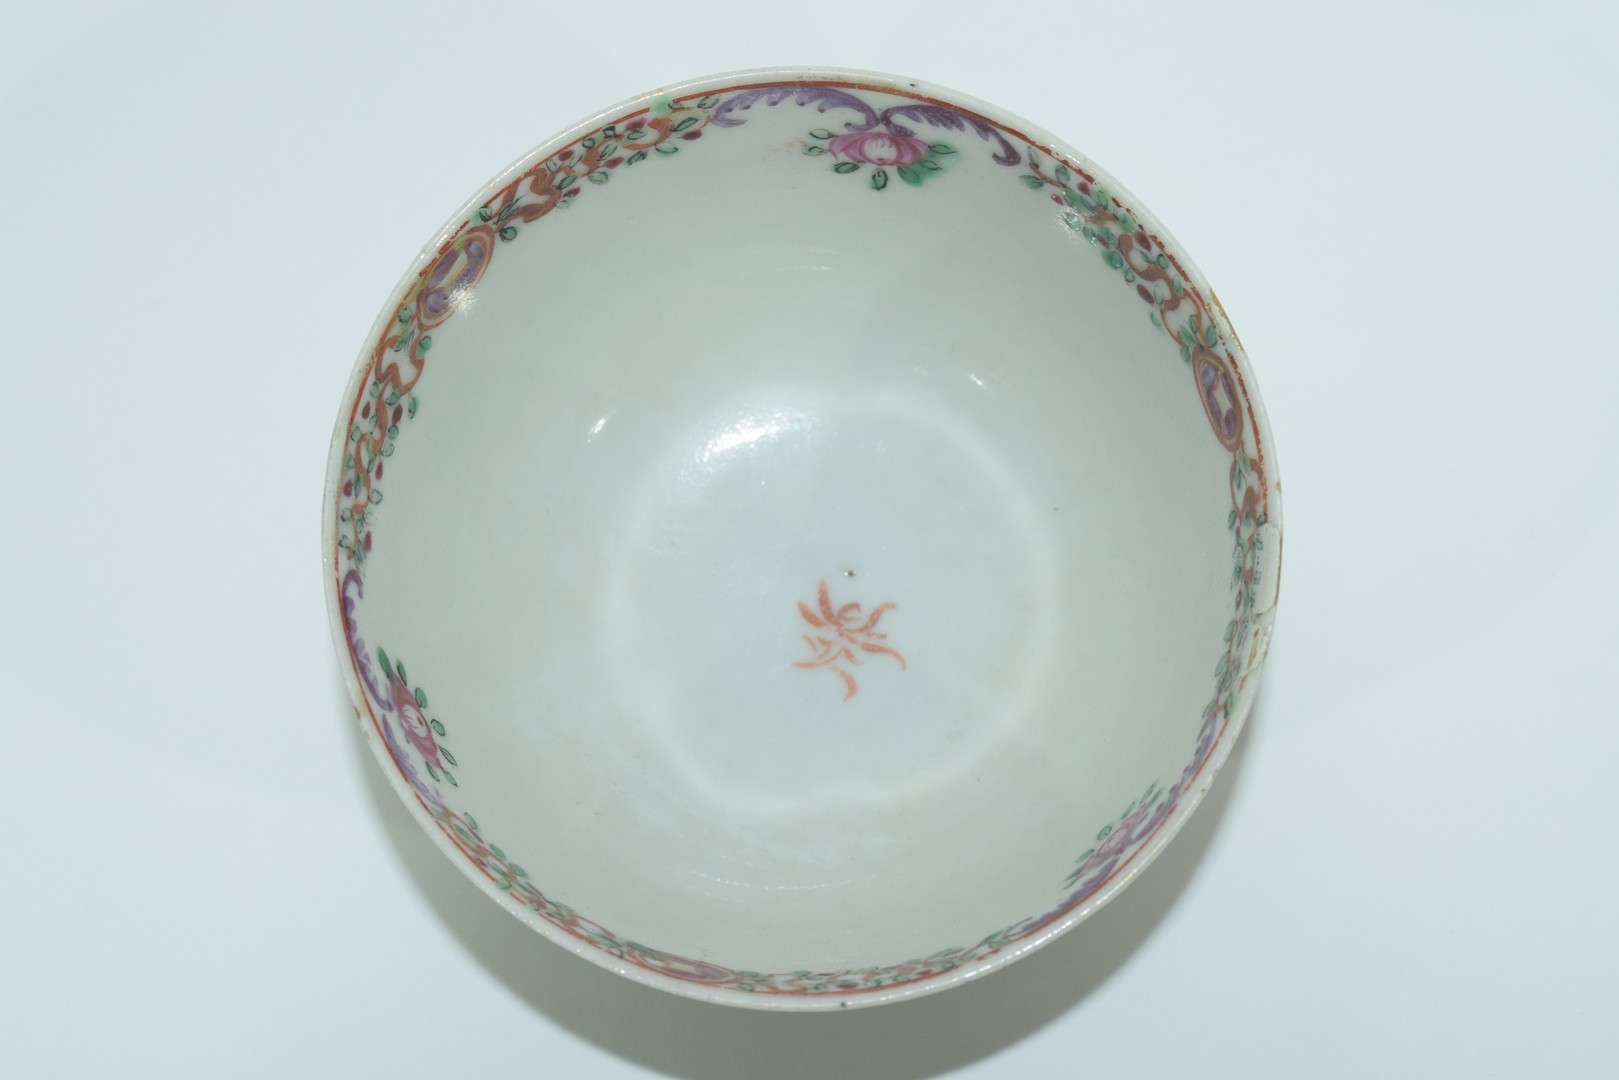 Small Chinese bowl, 18th century - Image 10 of 13